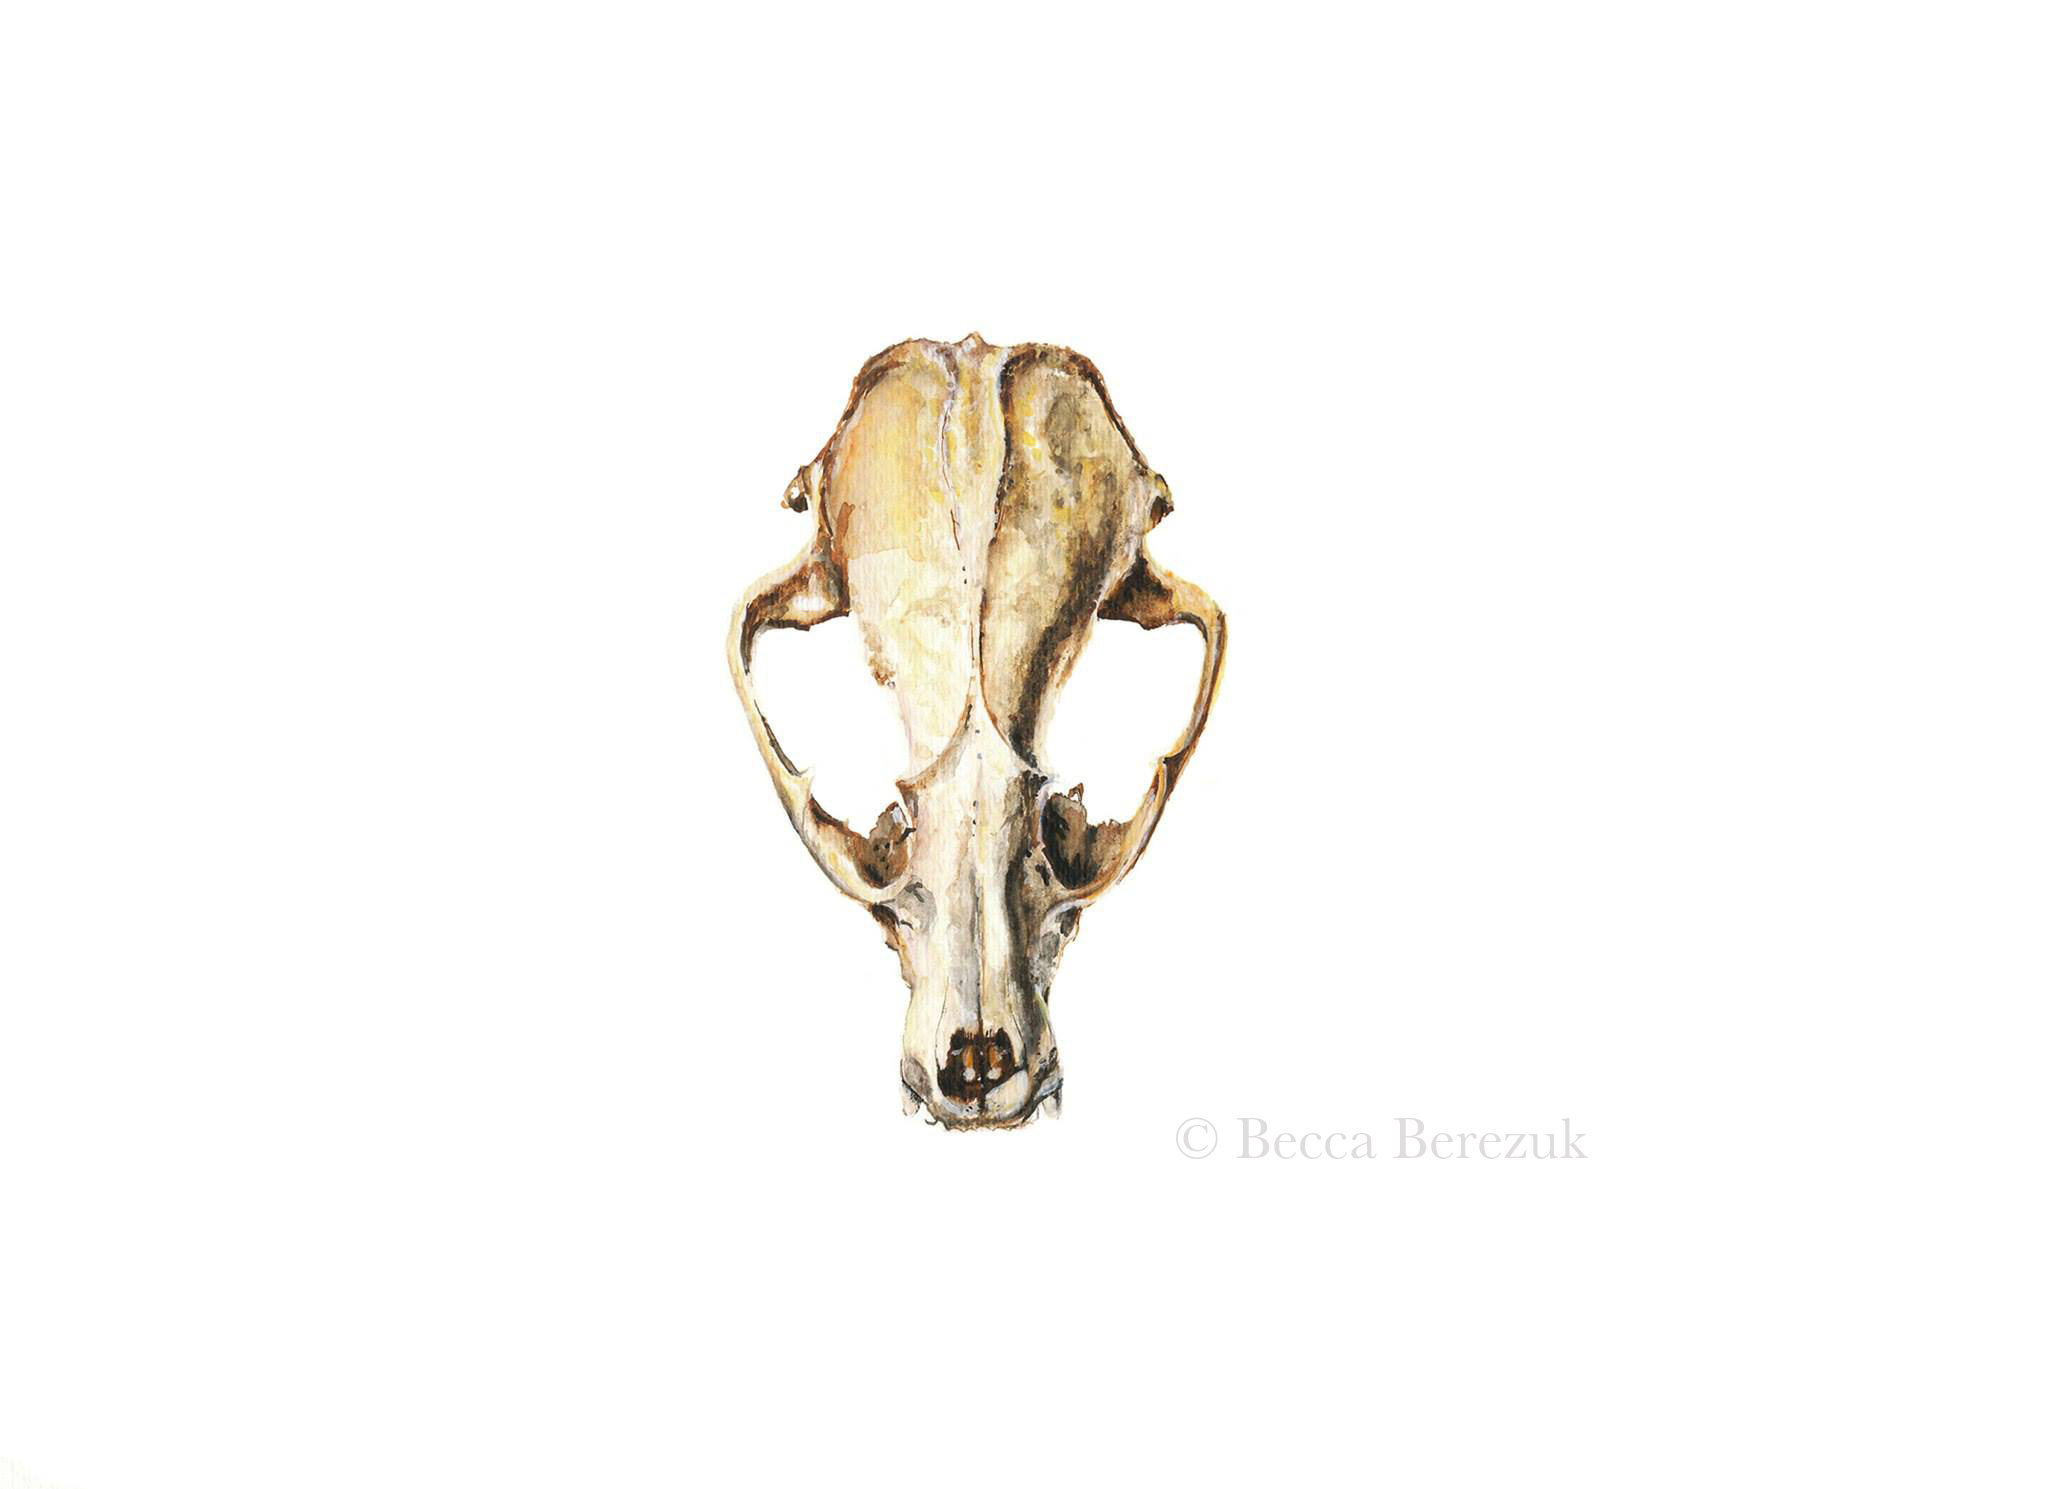 Raccoon skull,  watercolor